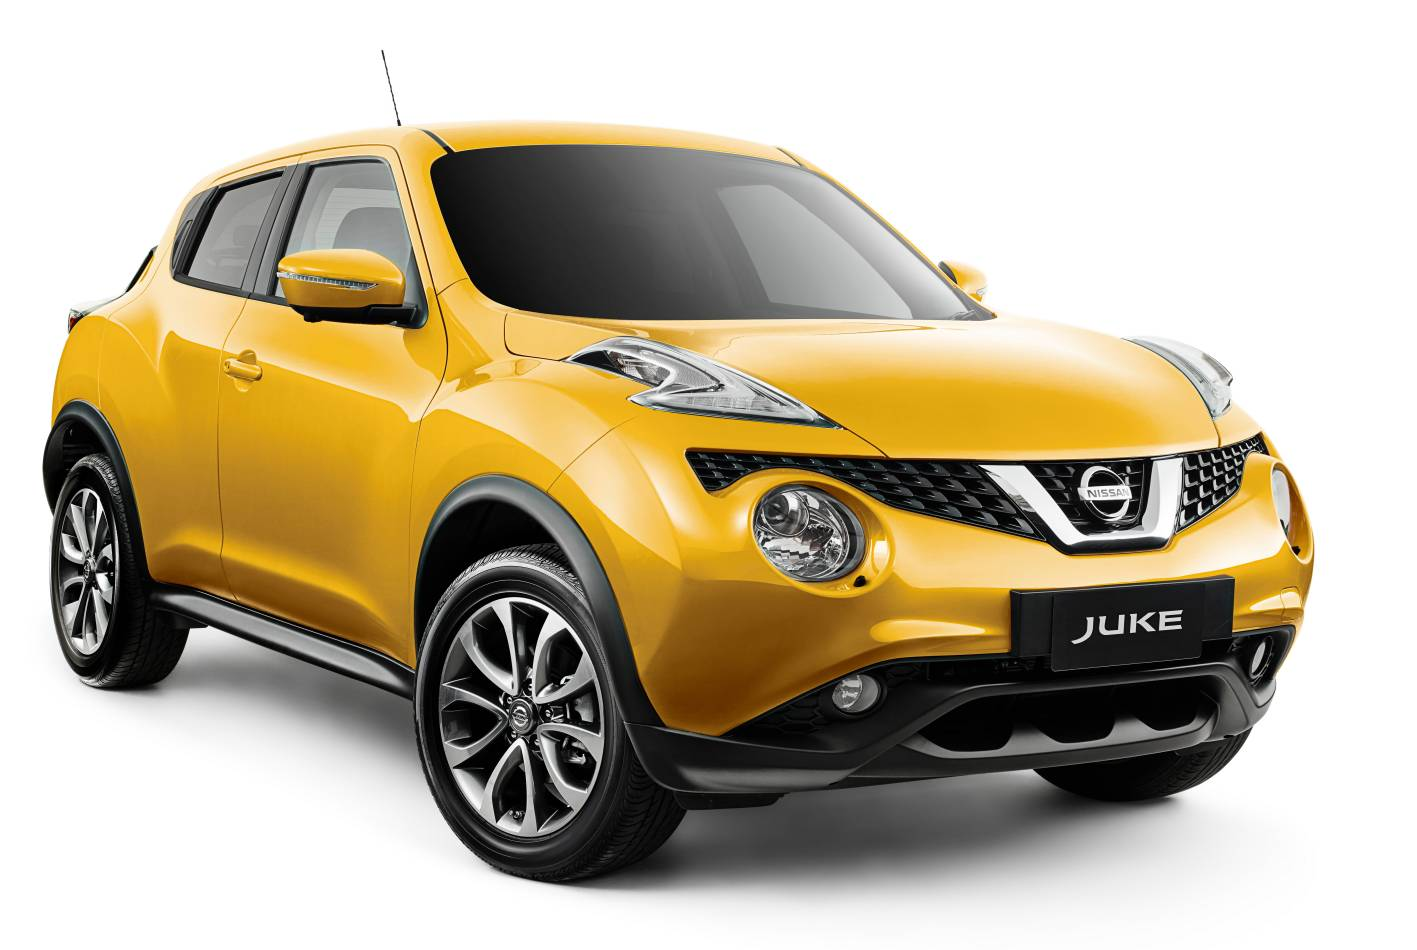 2015 nissan juke pricing and specifications photos 1. Black Bedroom Furniture Sets. Home Design Ideas